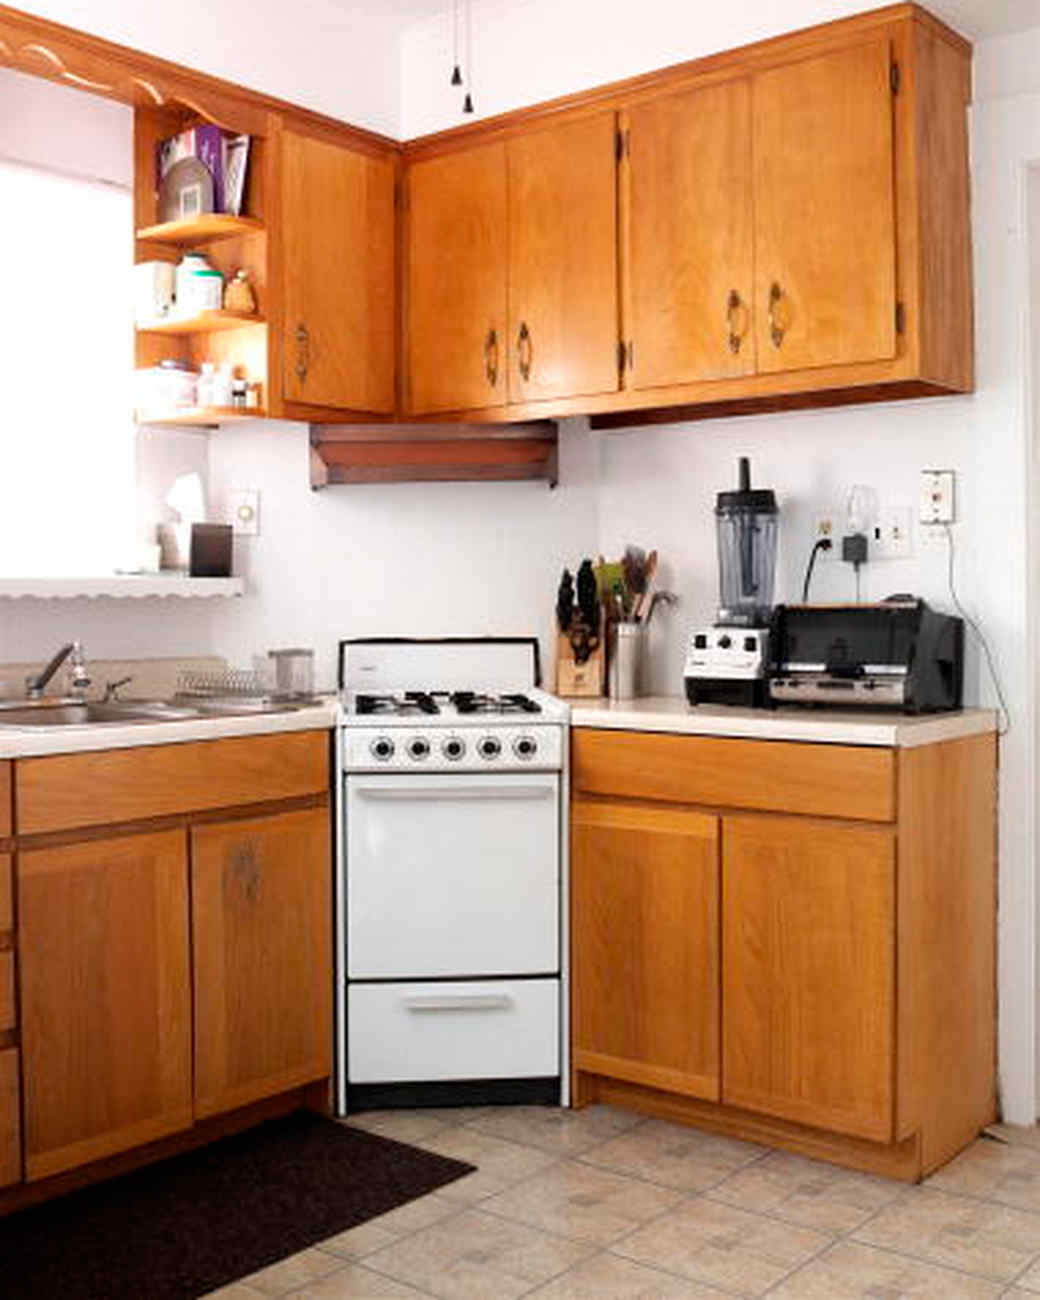 Kitchen Makeovers On A Low Budget: A Kitchen Makeover On A Budget